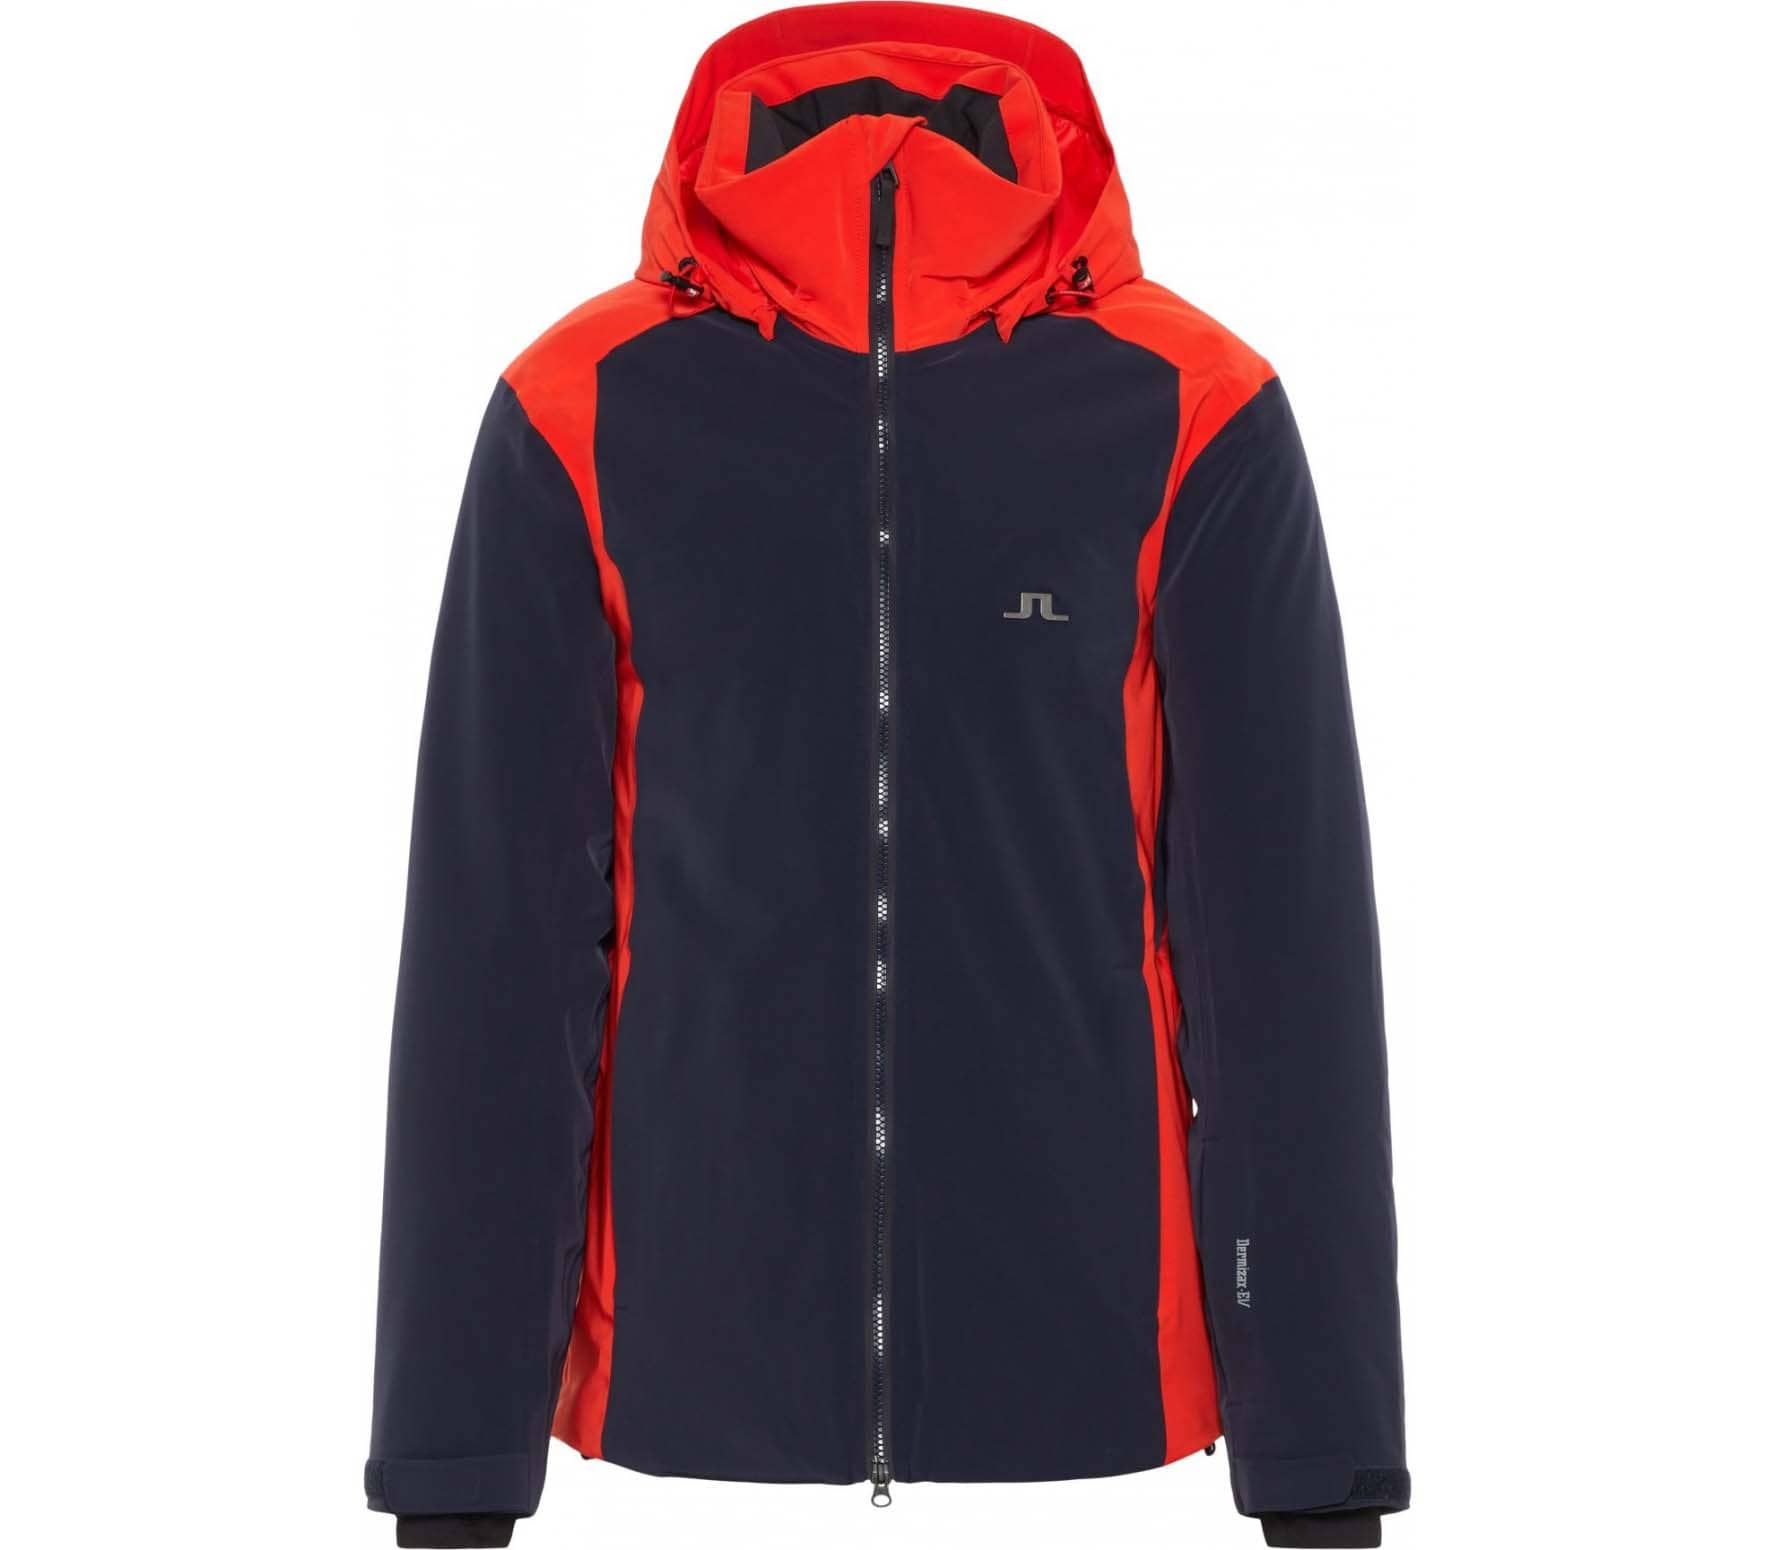 DOUGLAS DERMIZAX Men Ski Jacket